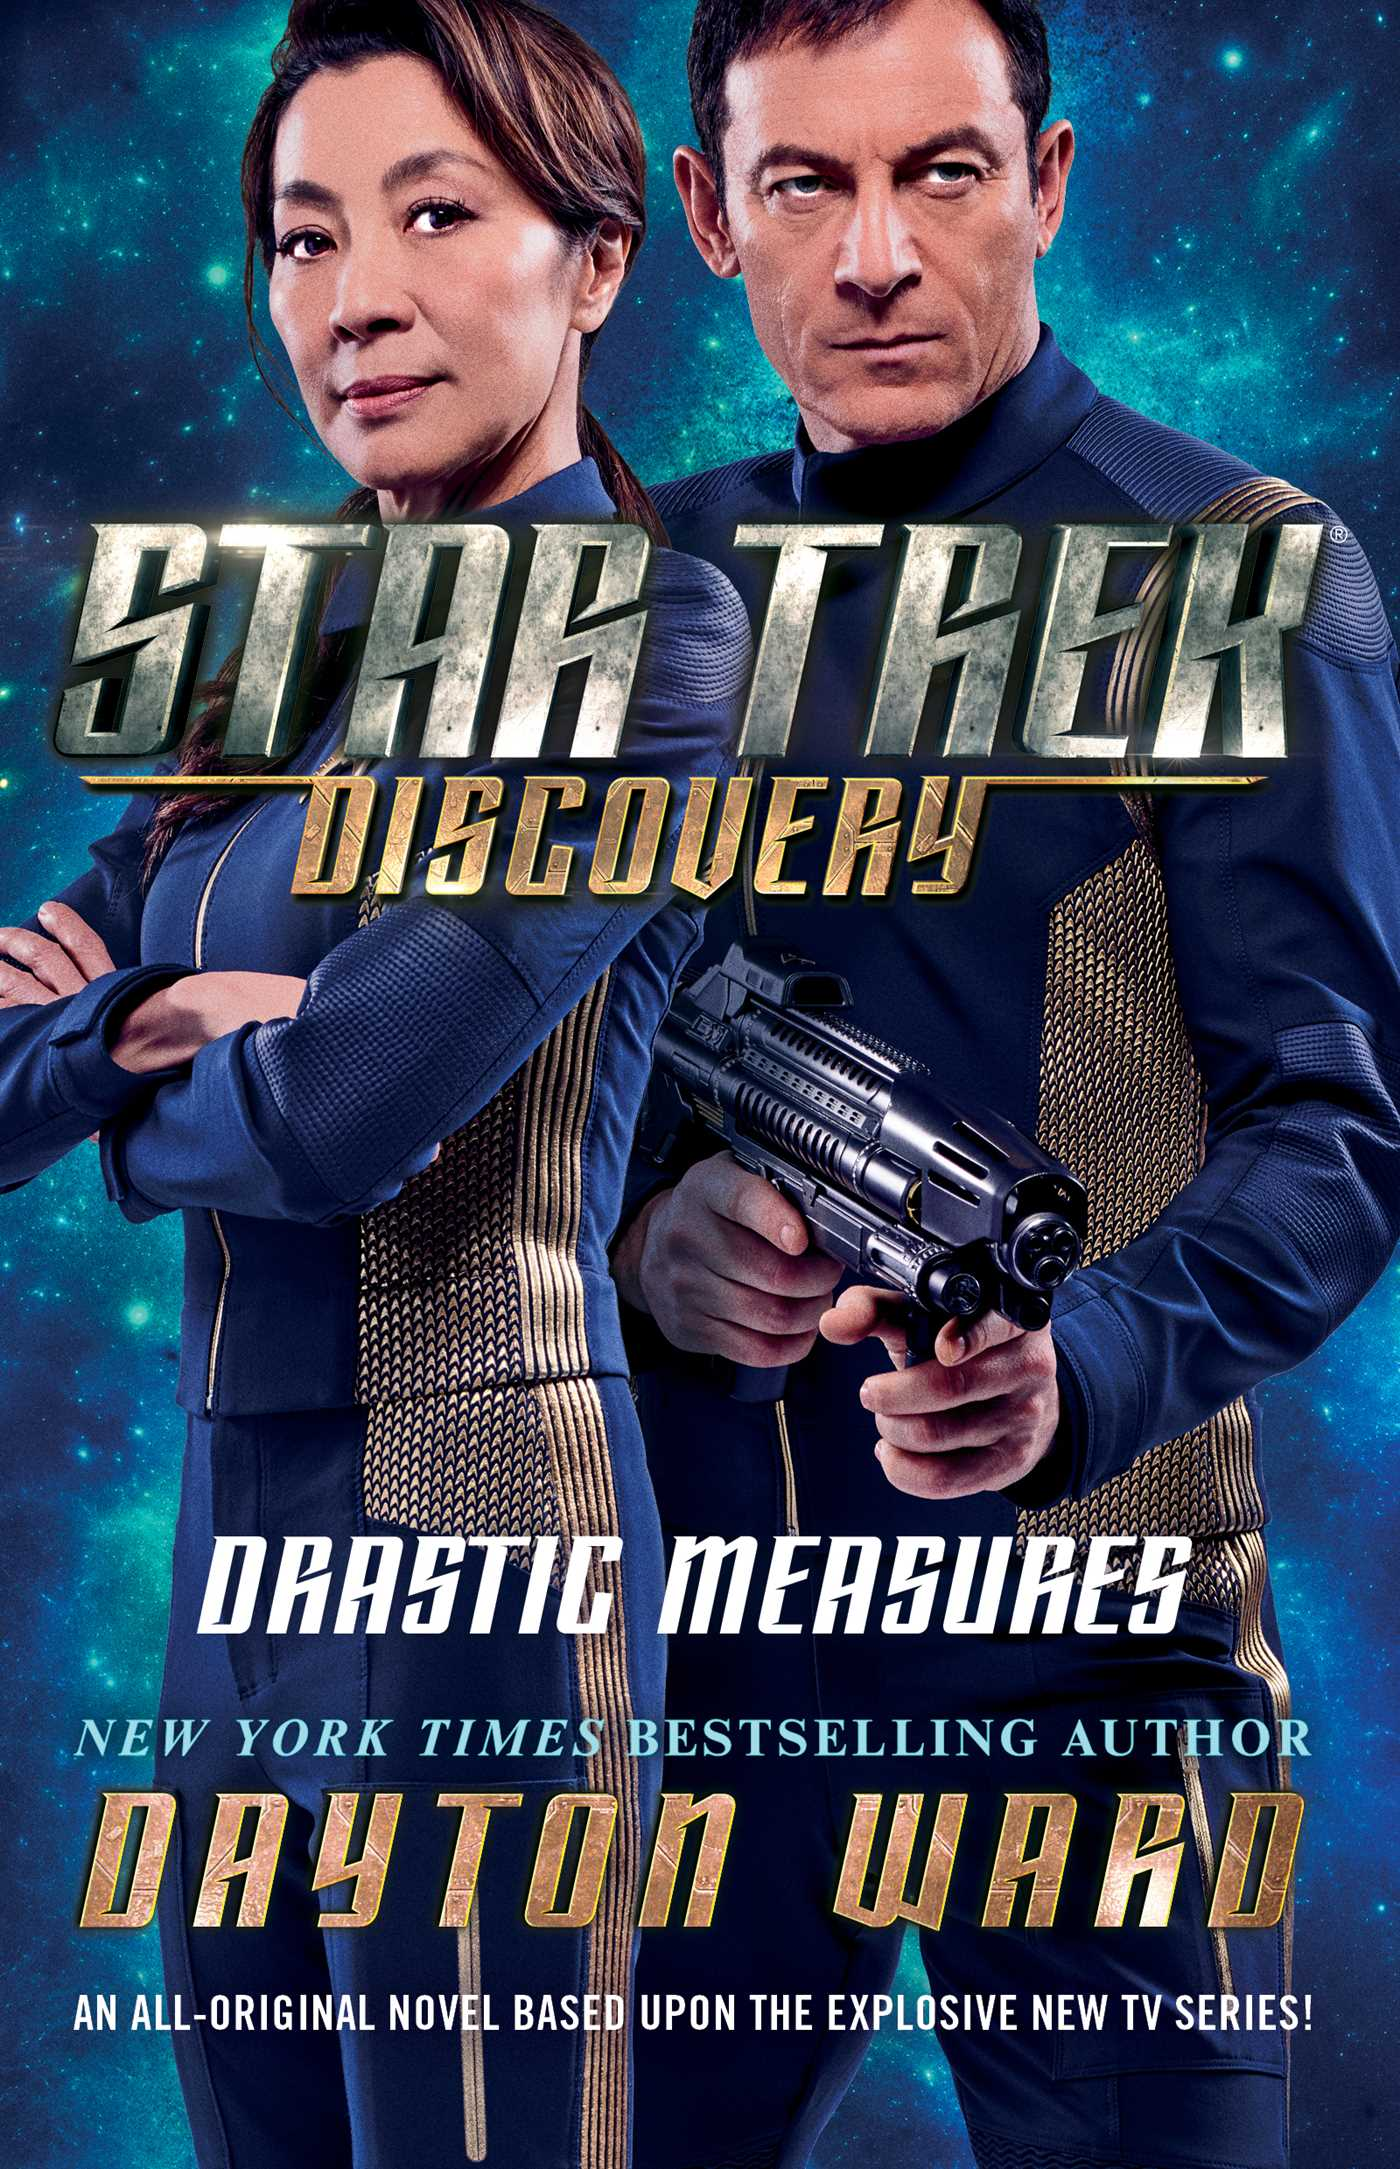 Star trek discovery drastic measures 9781501171741 hr